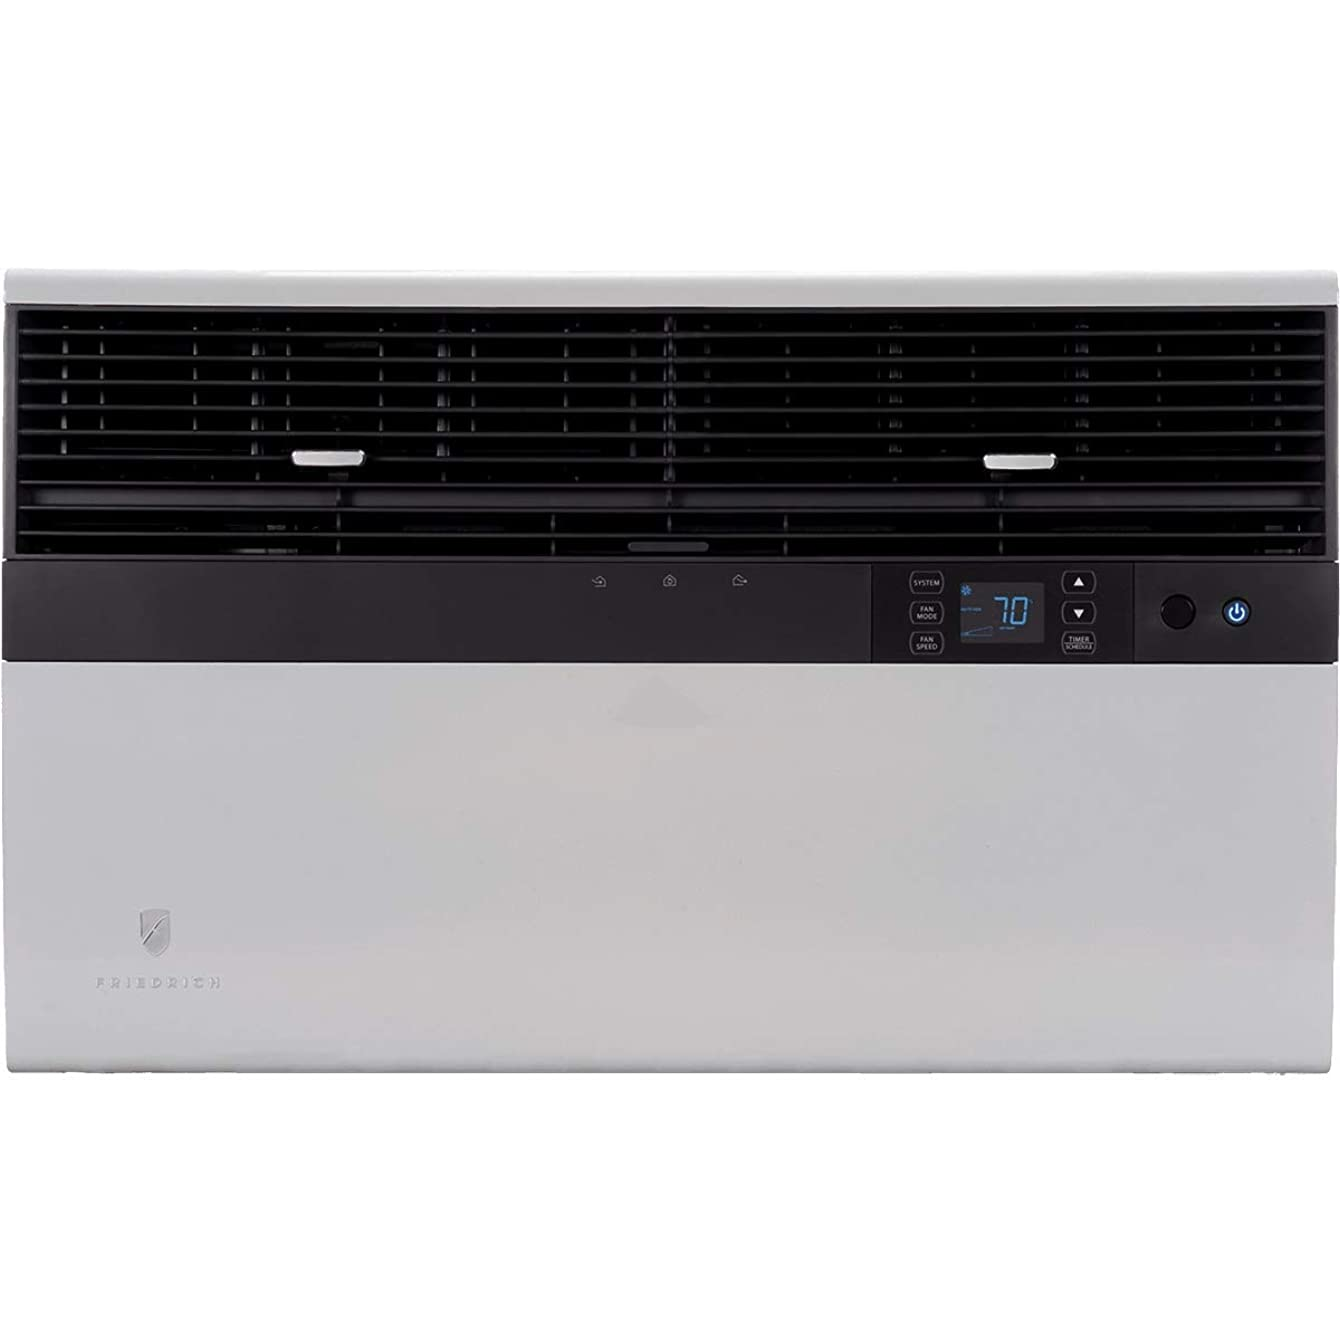 Friedrich Kuhl Window Air Conditioner 20,500 BTU